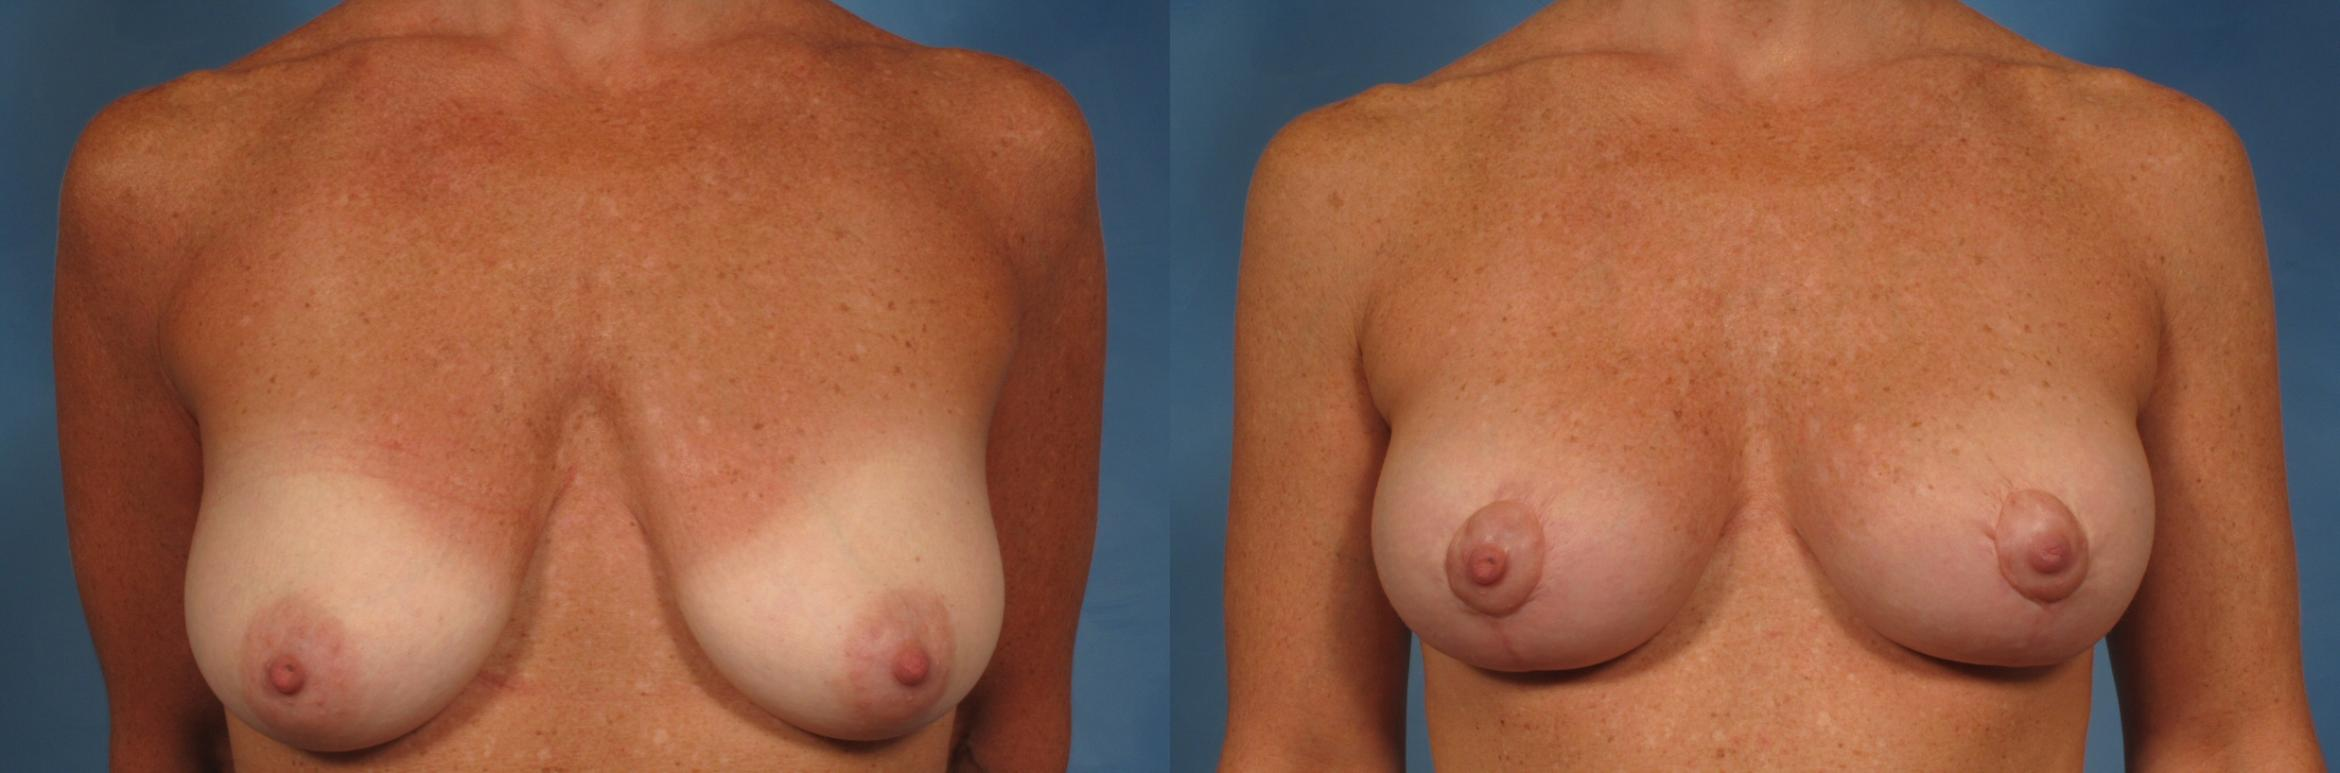 Breast Lift Case 199 Before & After View #1 | Naples, FL | Kent V. Hasen, M.D.